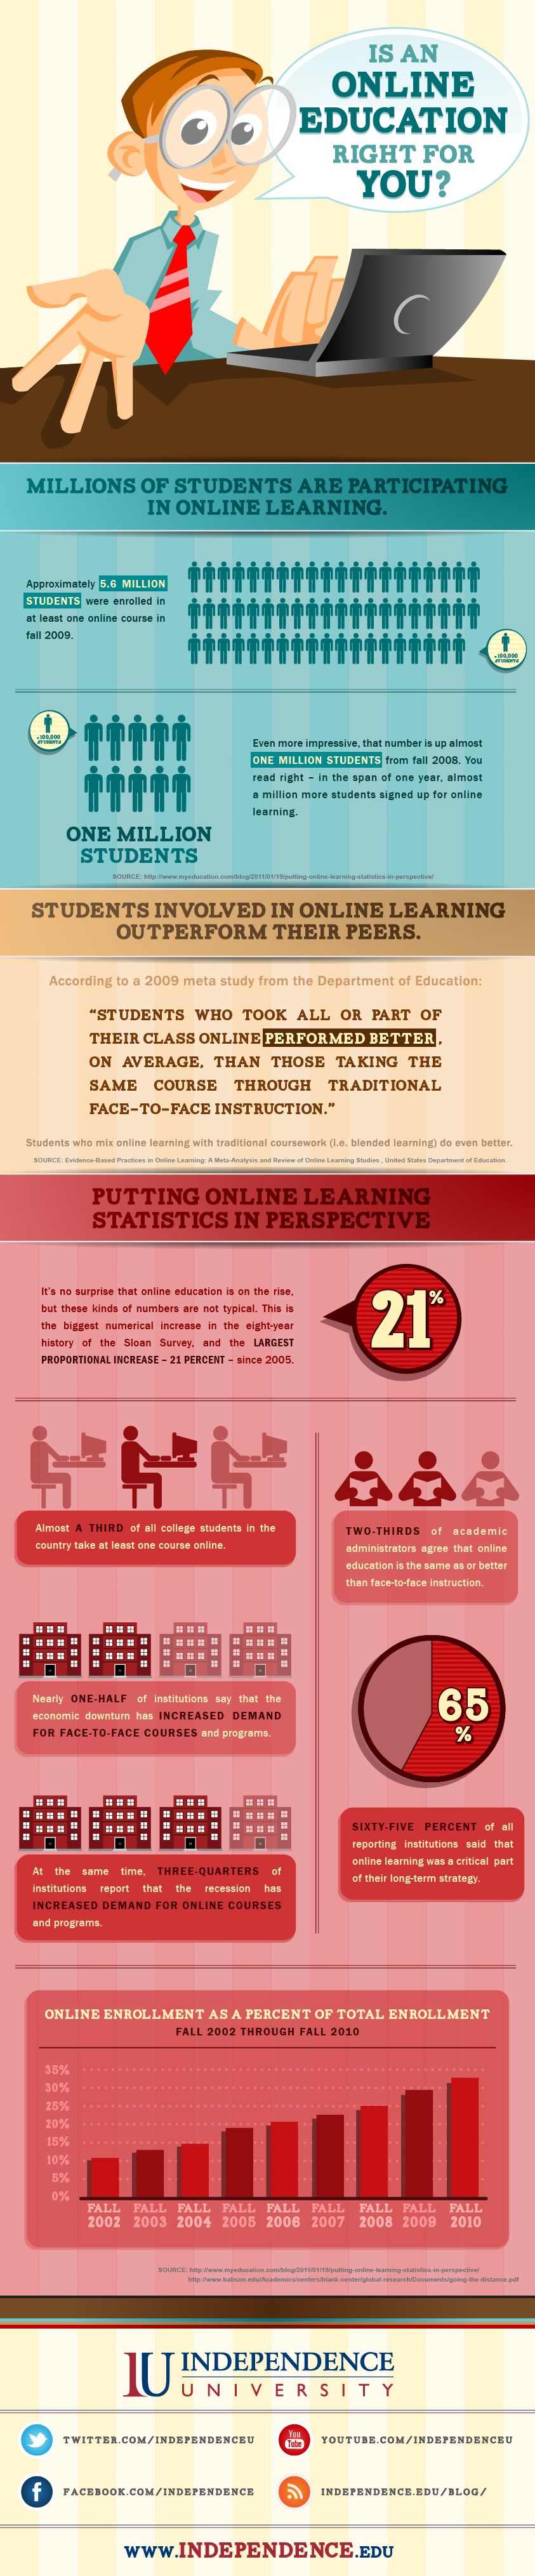 Independence University infographic online education